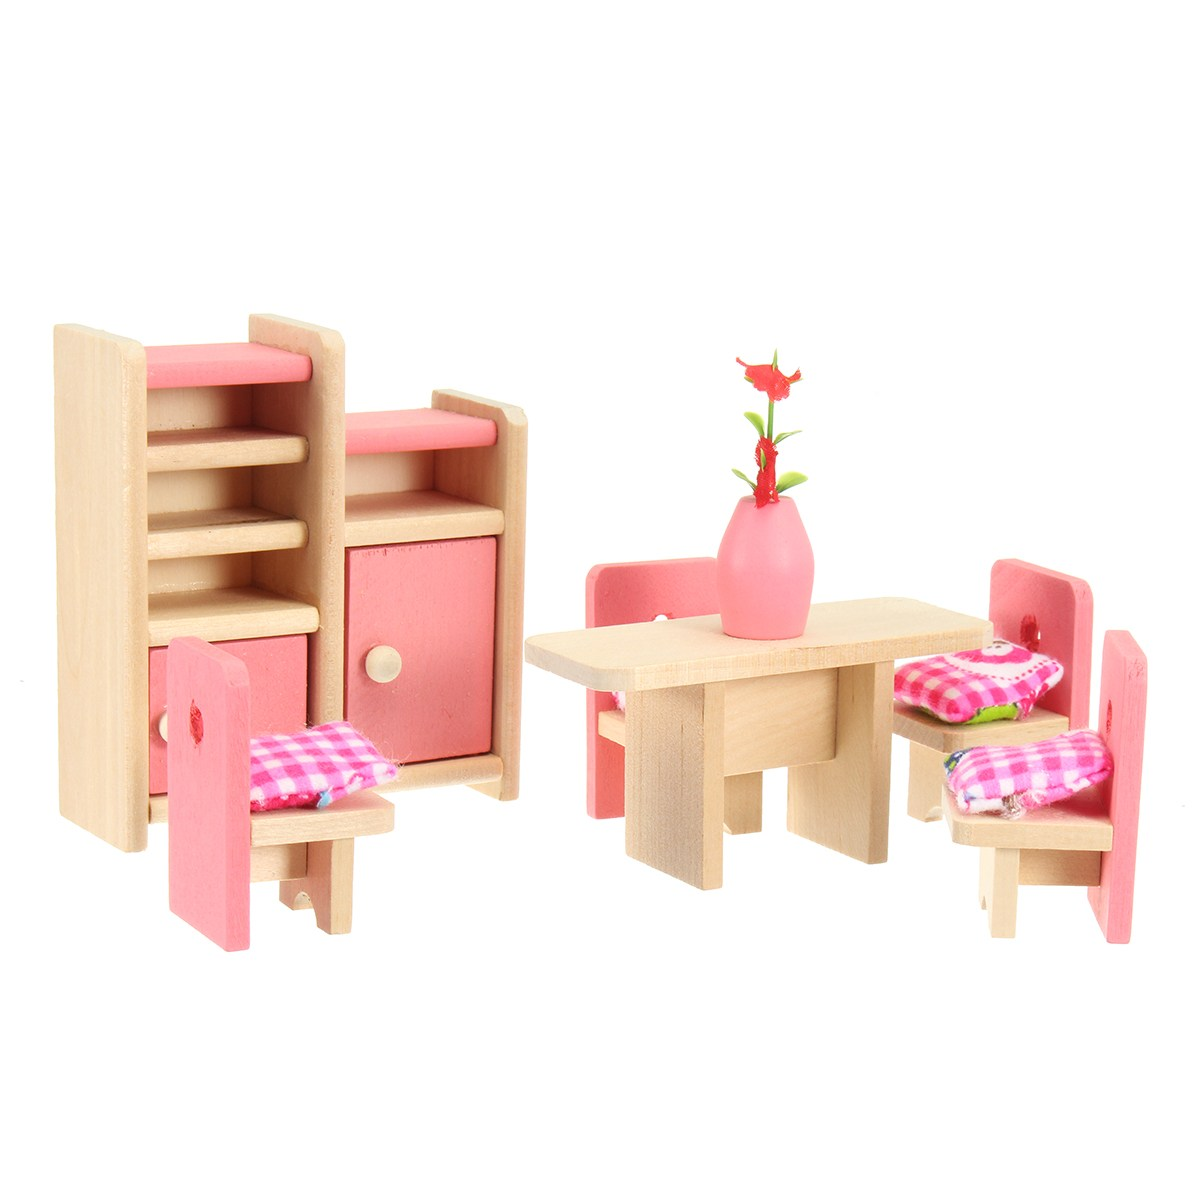 1:12 Dollhouse Dinning Room Miniature Decor Figurines Toys for Kids Christmas Gift Craft